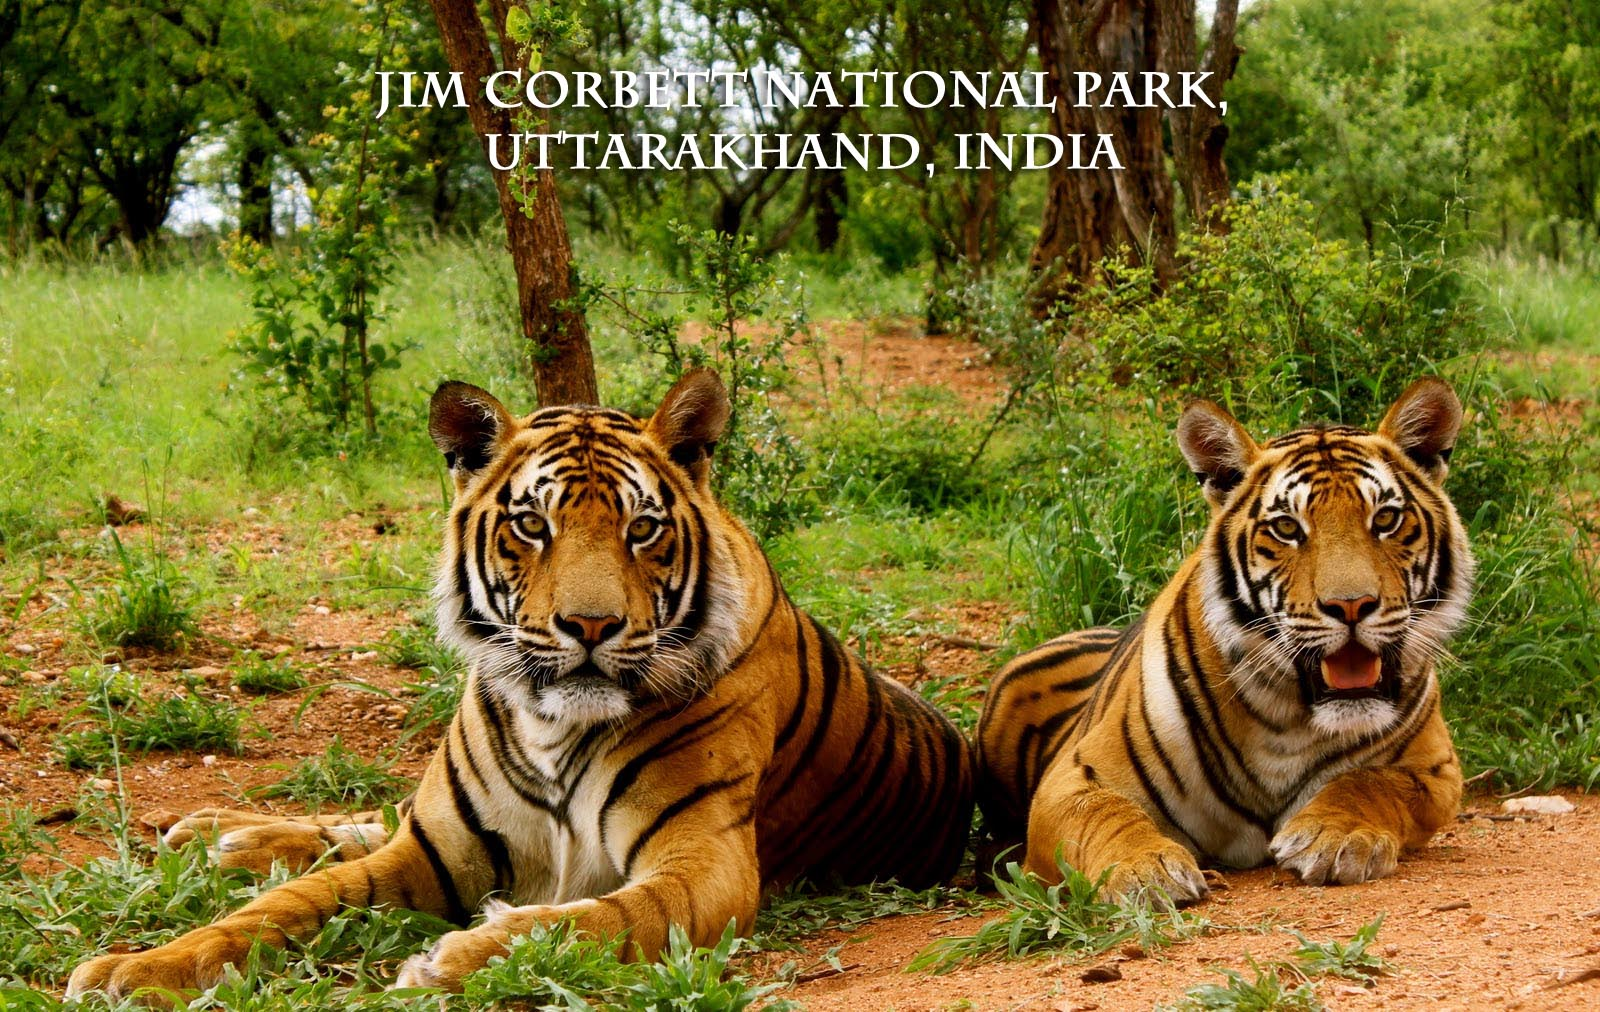 jim corbett national park Planning an enthralling visit to jim corbett national park here is what you should know about all the things to do and other details within the park.